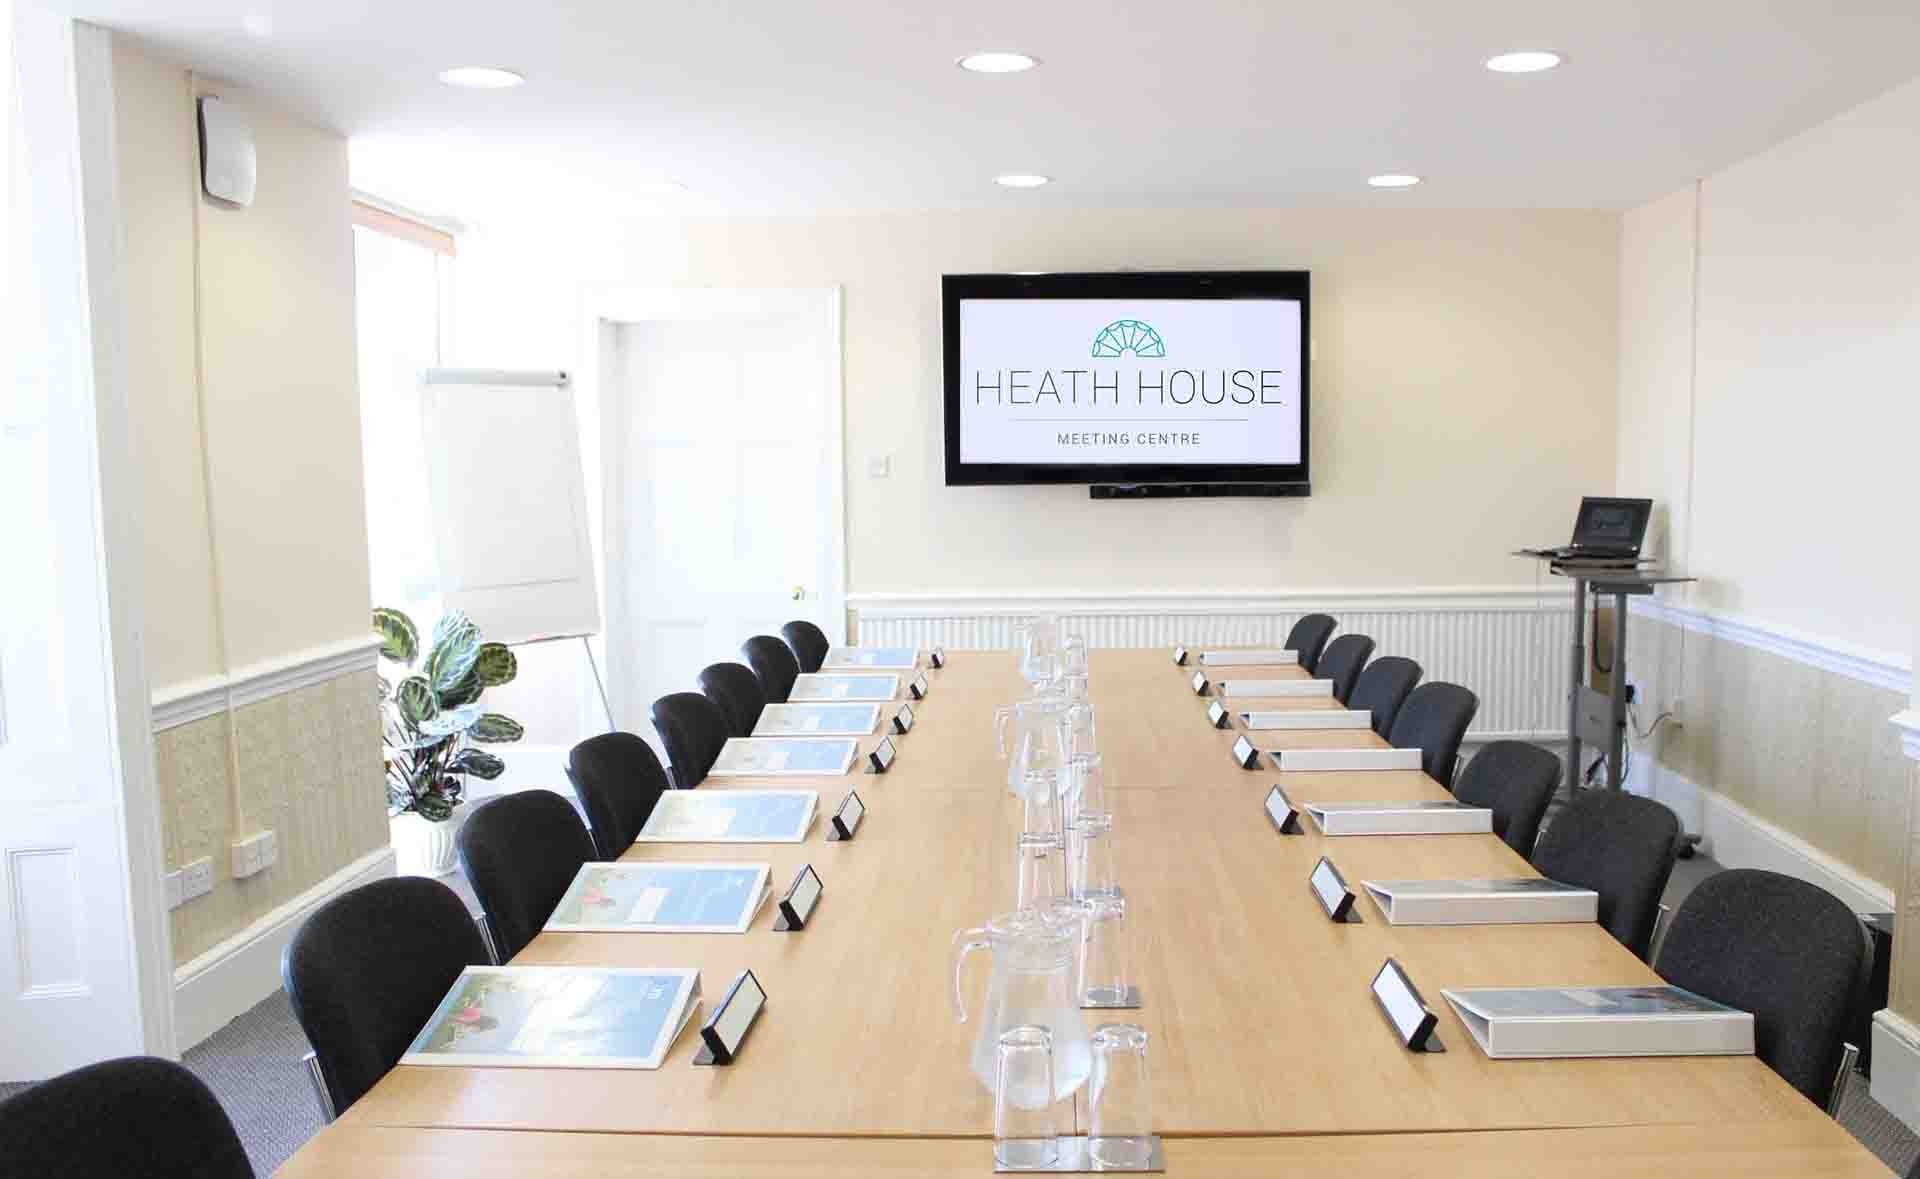 Bromley Meeting Room – Heath House Conference Centre, Uttoxeter, Staffordshire near JCB